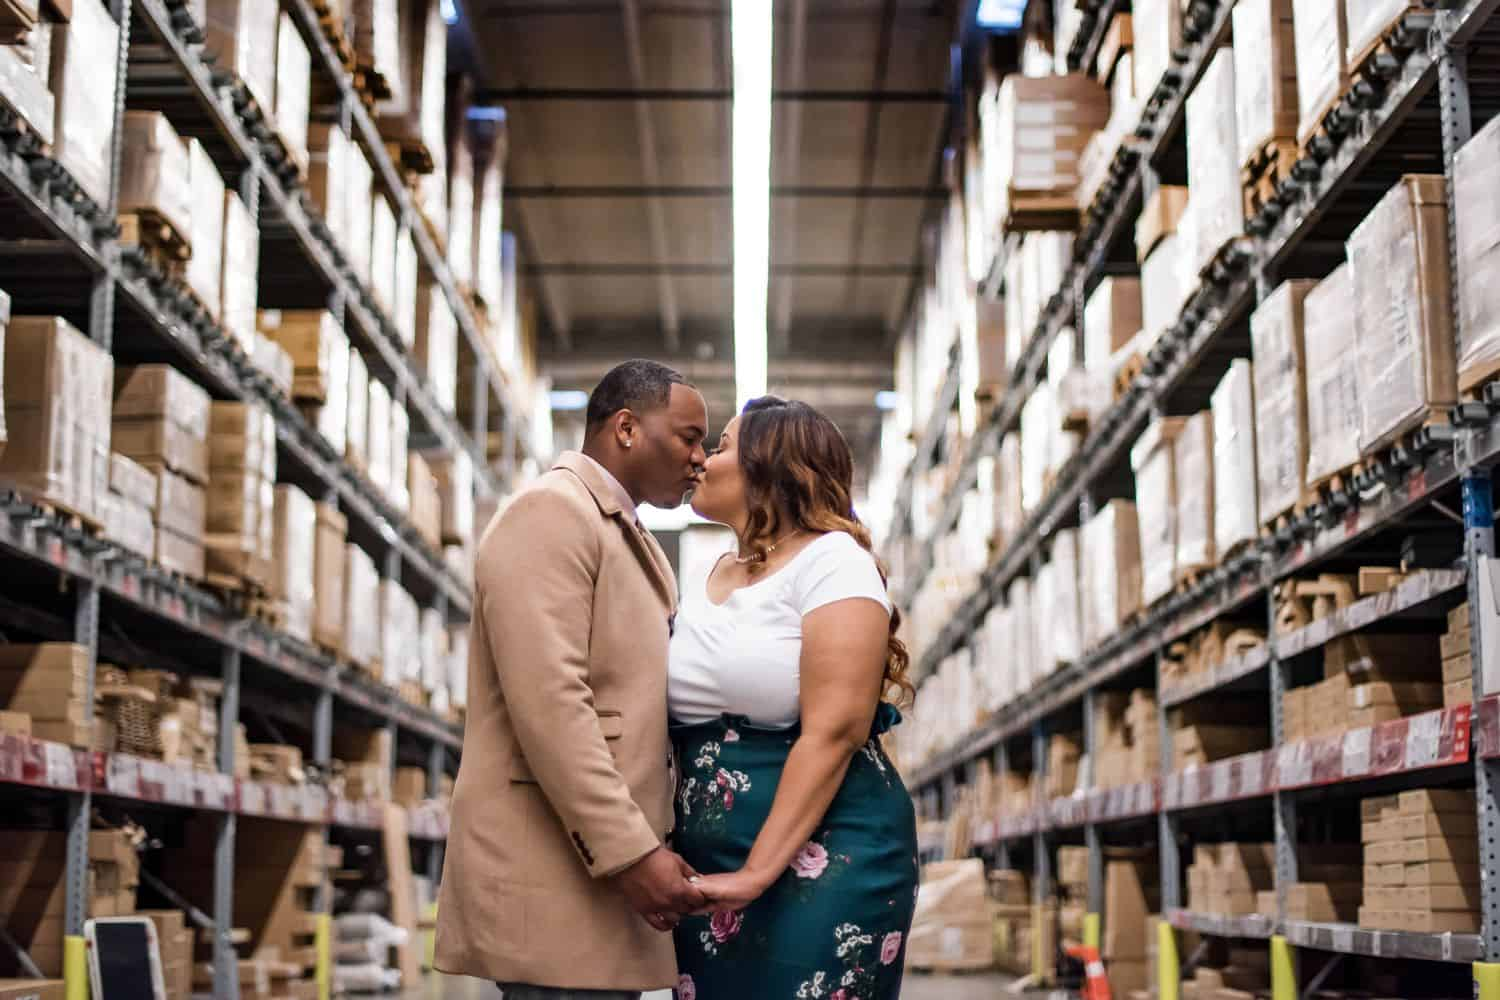 Great Engagement Images: Couple steals a kiss in the IKEA warehouse.